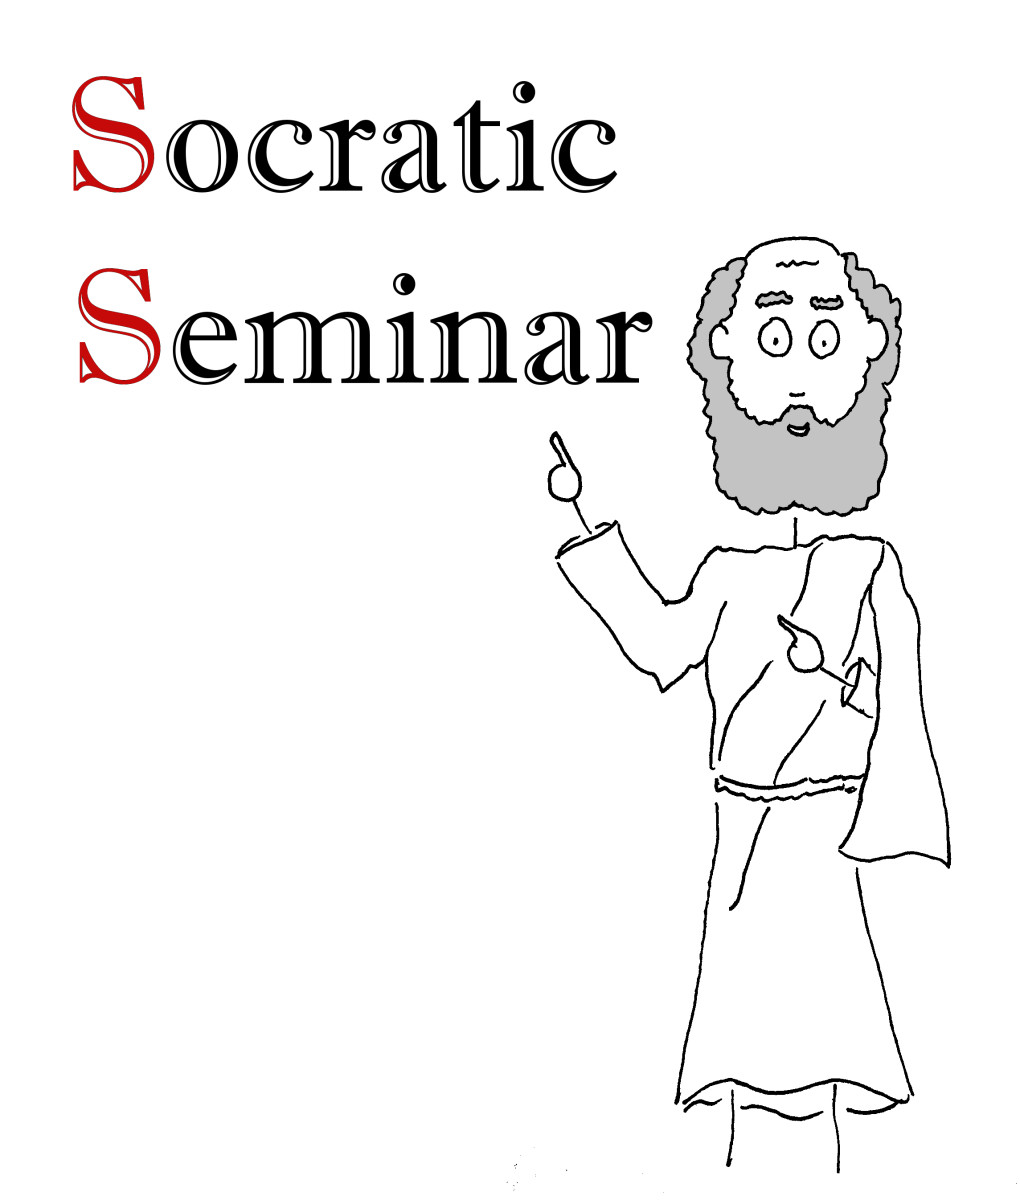 Socratic Seminar Guidelines: A Practical Guide